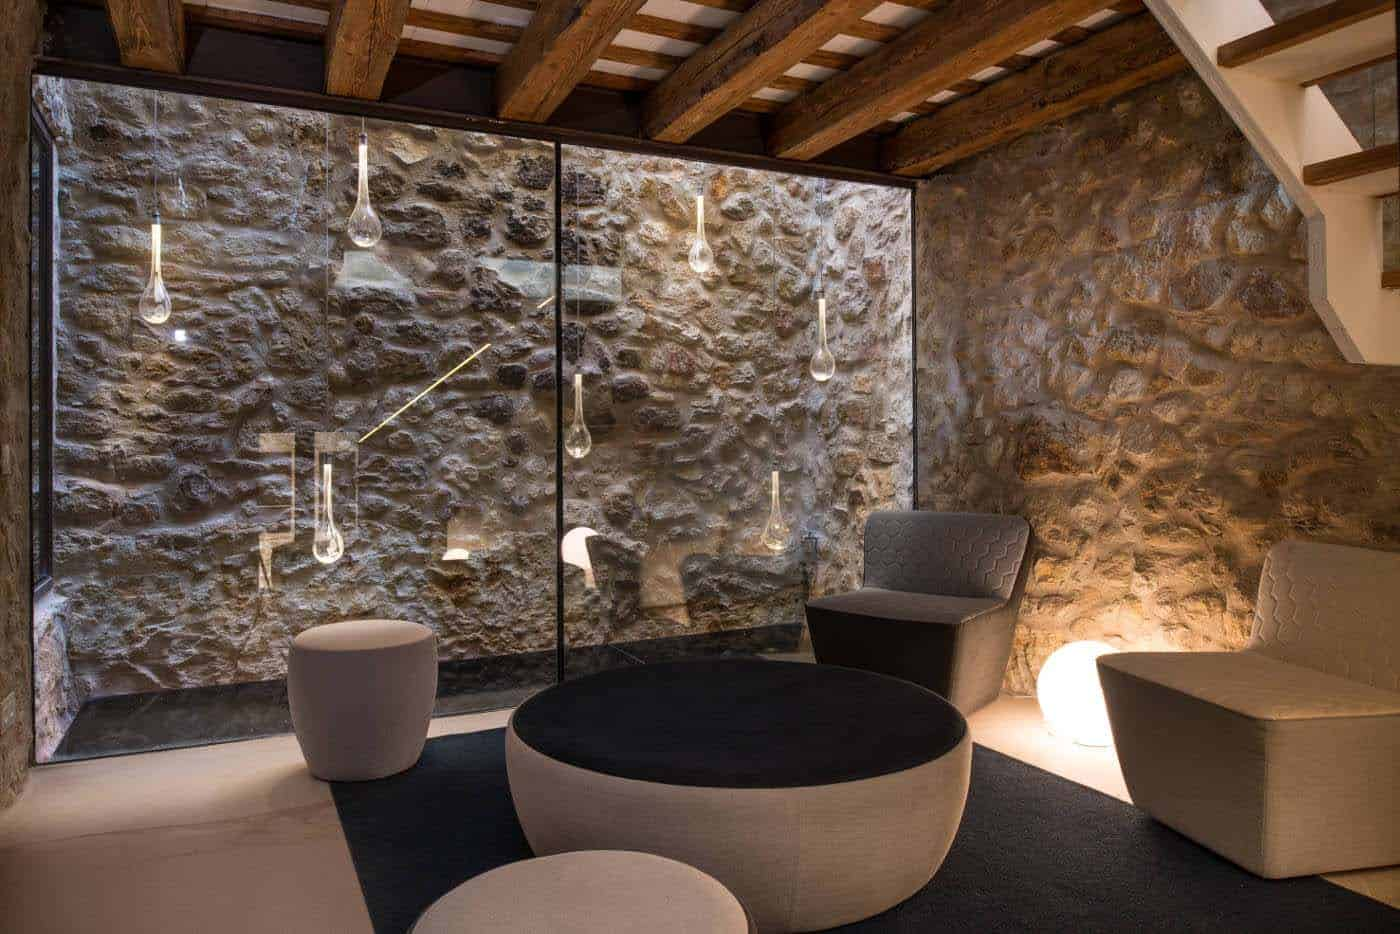 Historic Stone Dwelling-Gloria Duran Torrellas-03-1 Kindesign